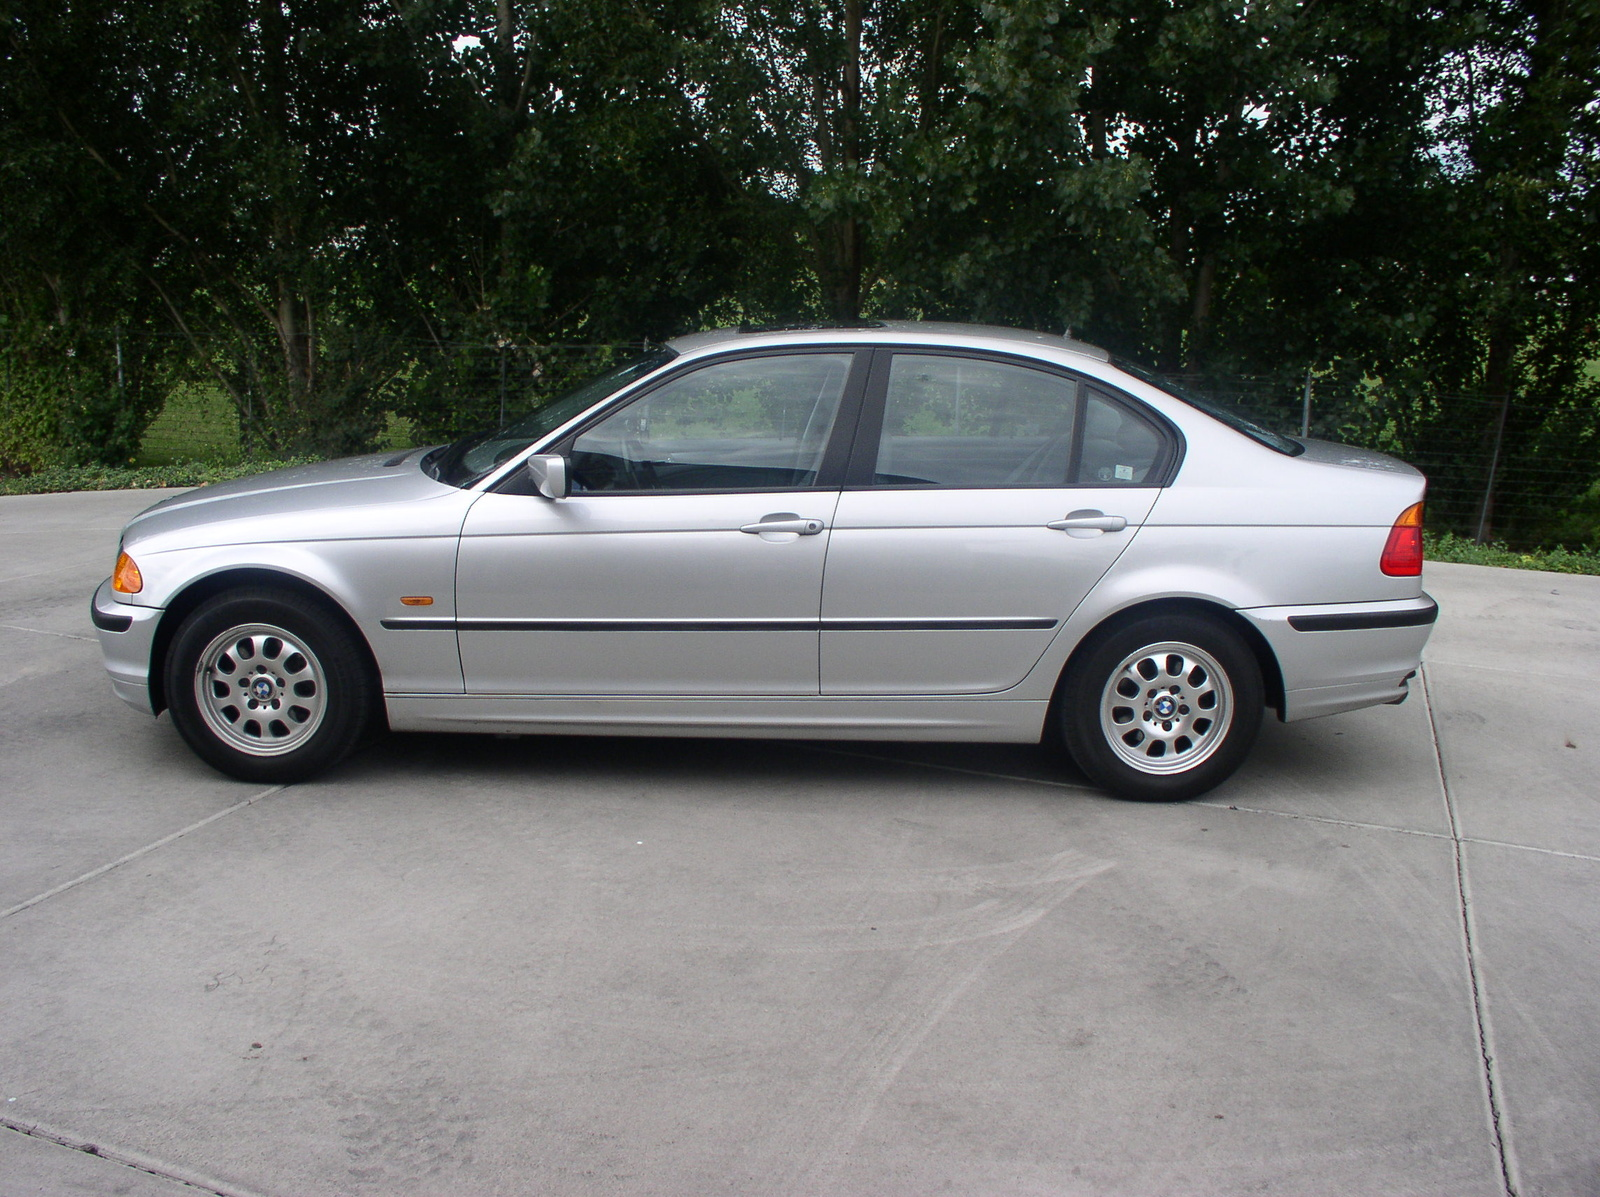 BMW 3 series 325i 1999 photo - 5